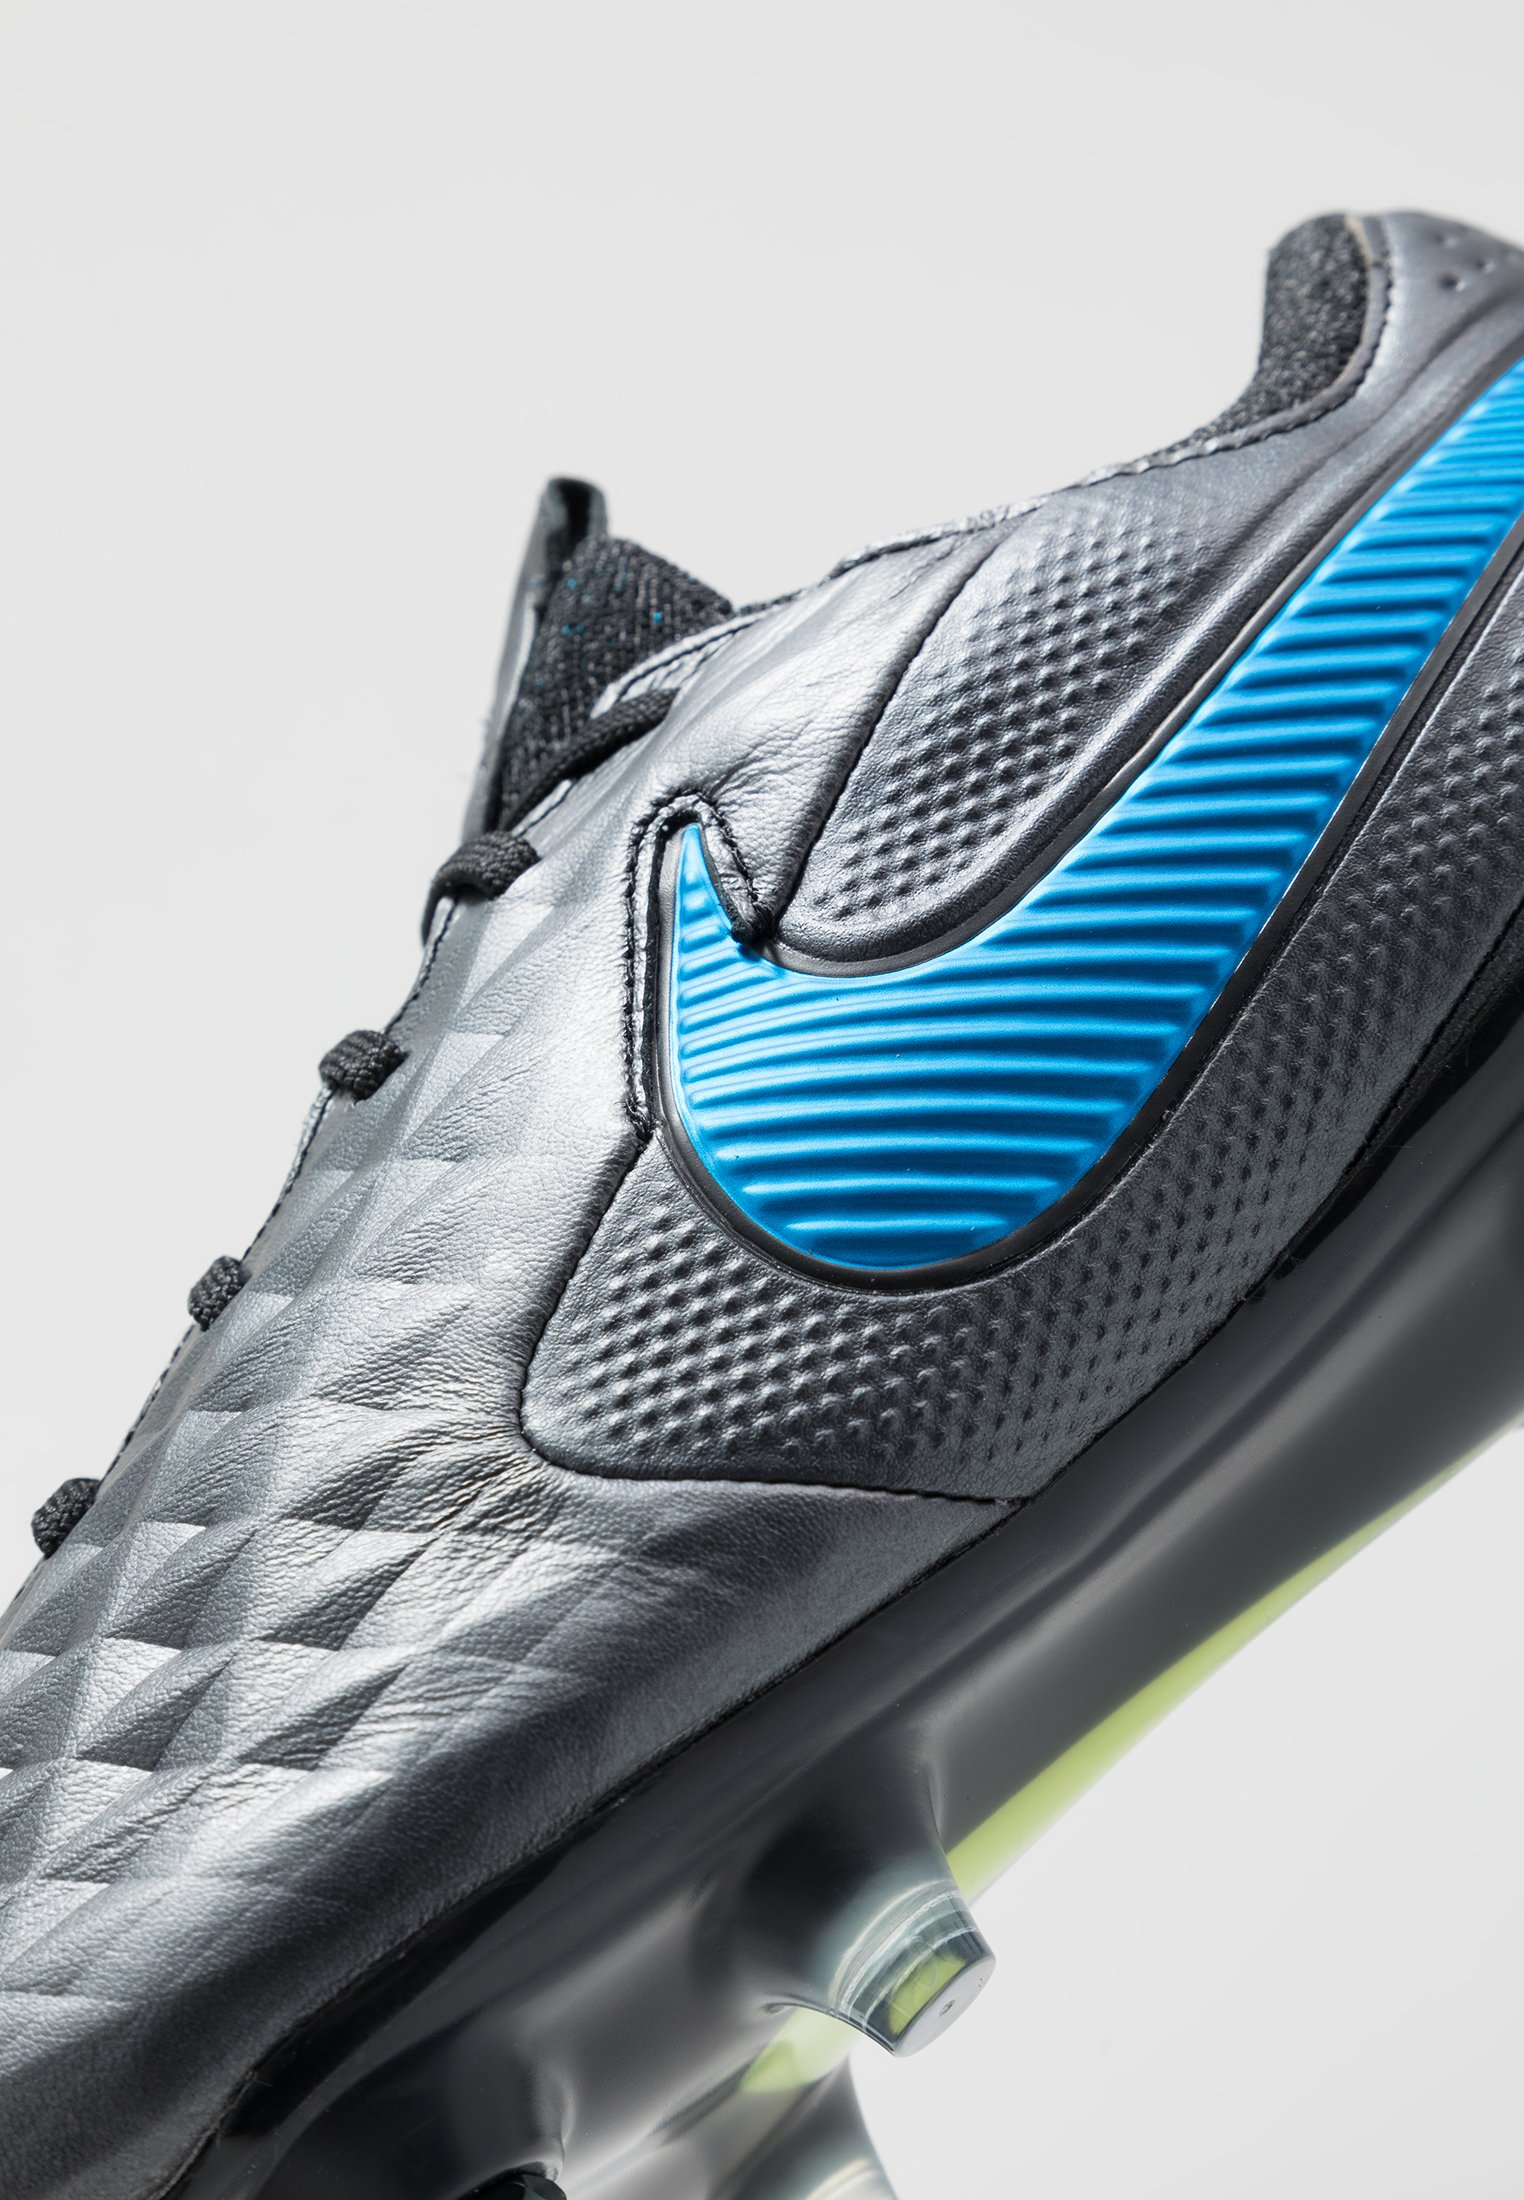 Calcio Da Tiempo AcScarpe Elite pro Hero Performance blue Con Legend Tacchetti Black 8 Sg Nike e9YbWEDIH2